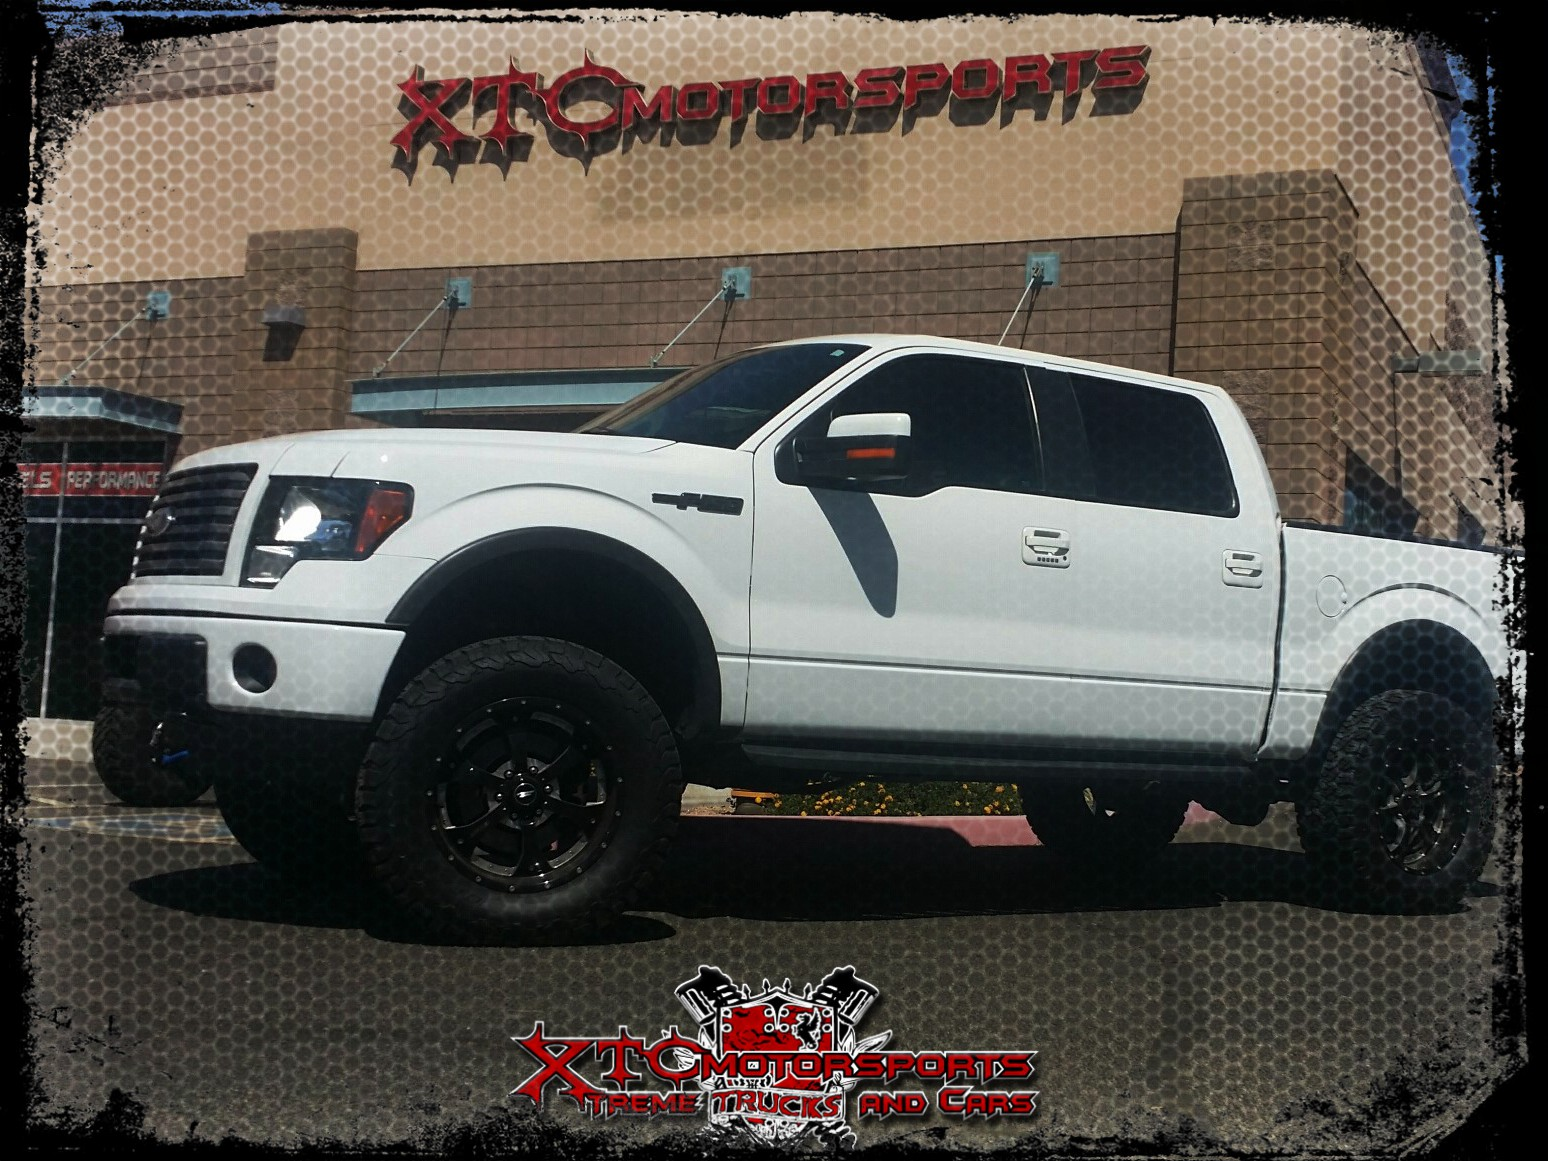 """It's been a while since we did this truck and never got any photos, well we had it back in the shop today so we grabbed some shots of Ryan's F150 that we put a BDS Suspension 6"""" Lift on with ICON Vehicle Dynamics 2.5 Front Coilovers & rear 2.0 shocks, Maxtrac Suspension 2"""" rear blocks, 325/60R20 BFGoodrich Tires KO2 tires on these BMF wheels he already sported on this truck."""